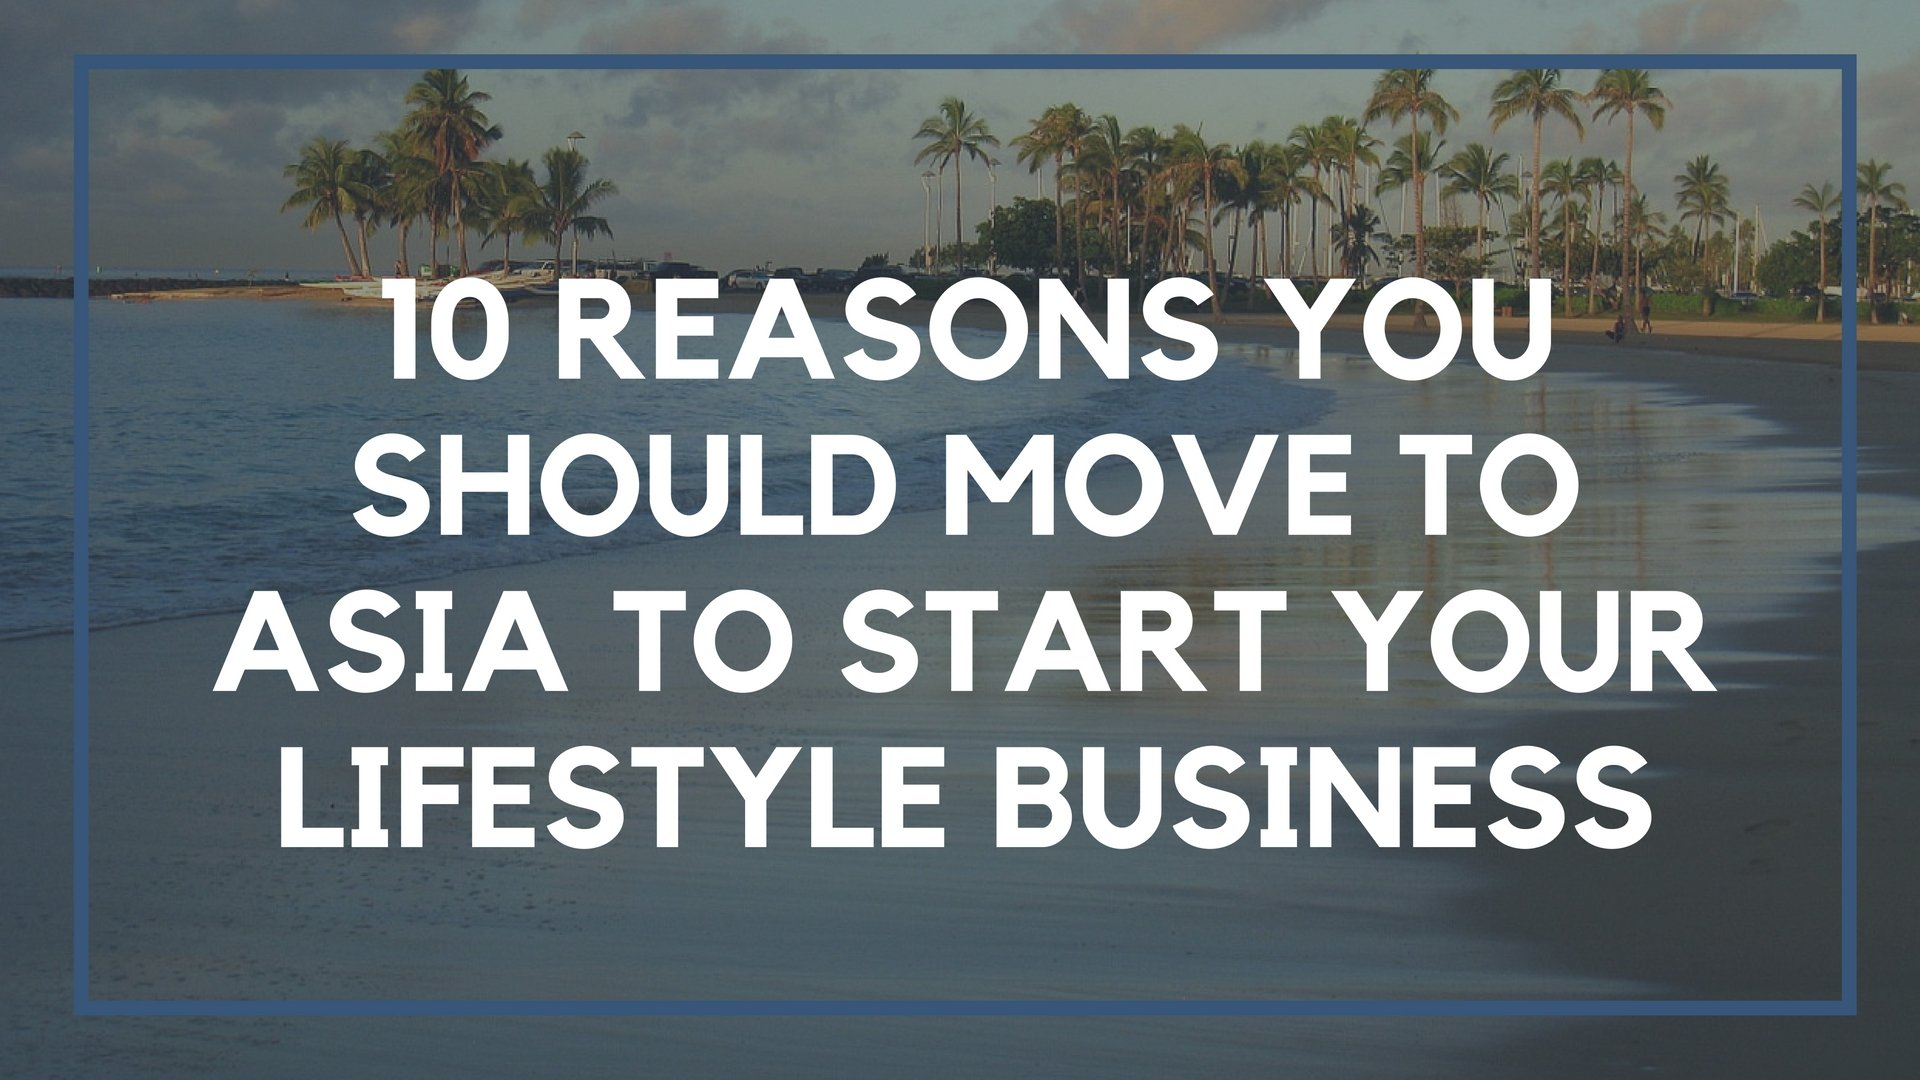 10 Reasons You Should Move to Asia to Start Your Lifestyle Business